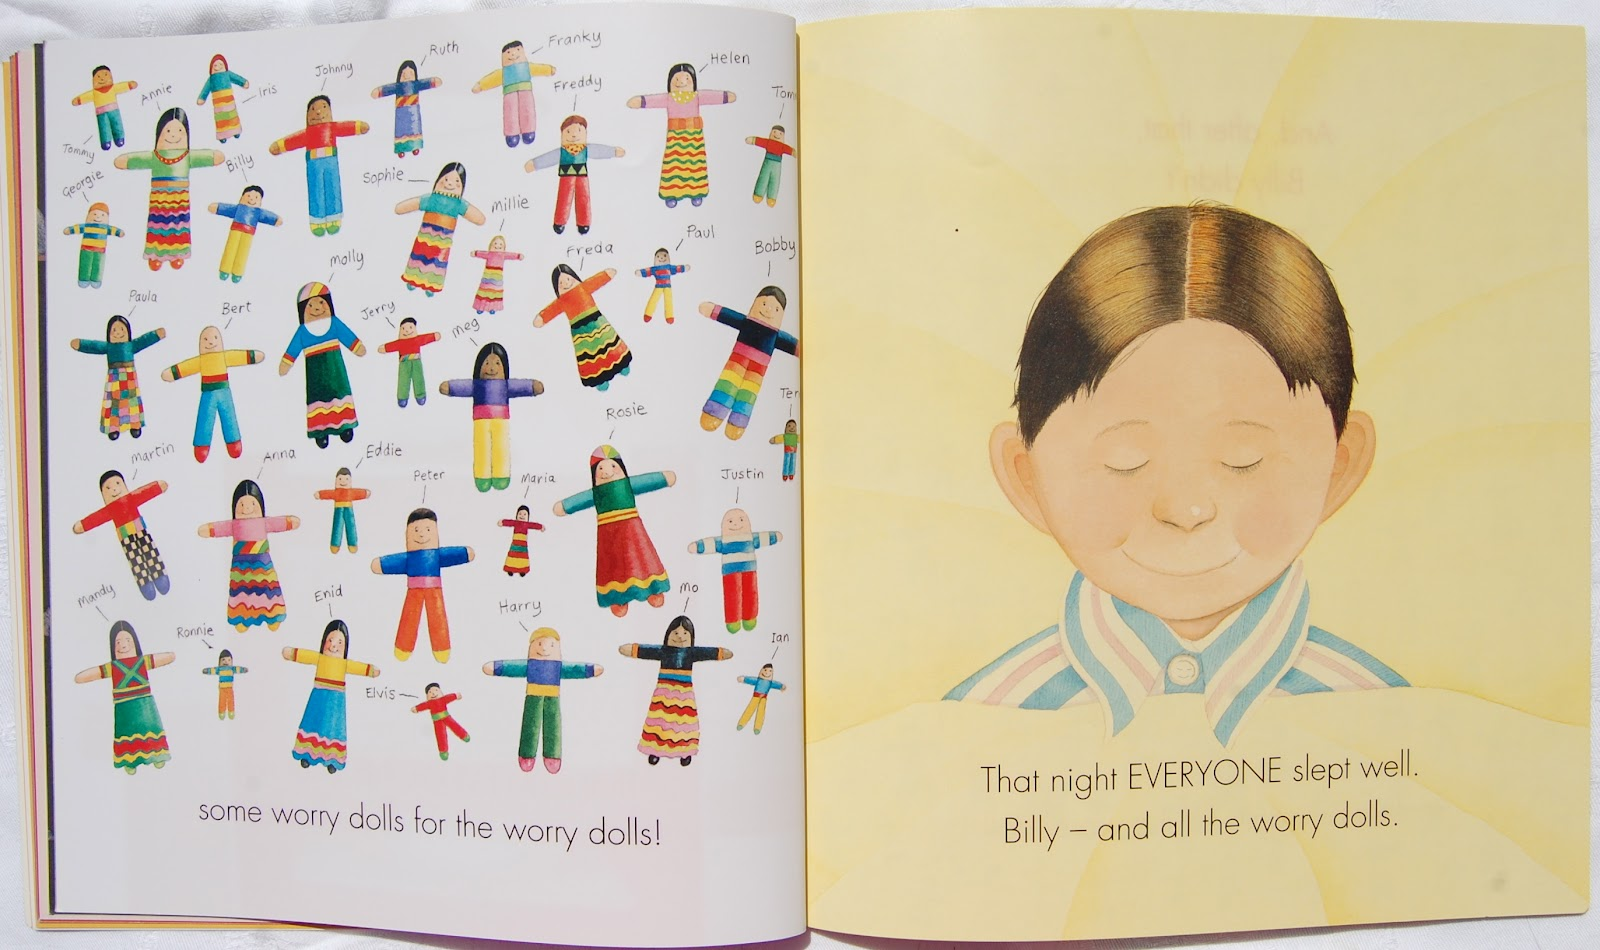 Workbooks willy the wimp worksheets : Picturebooks in ELT: Billy's worry dolls